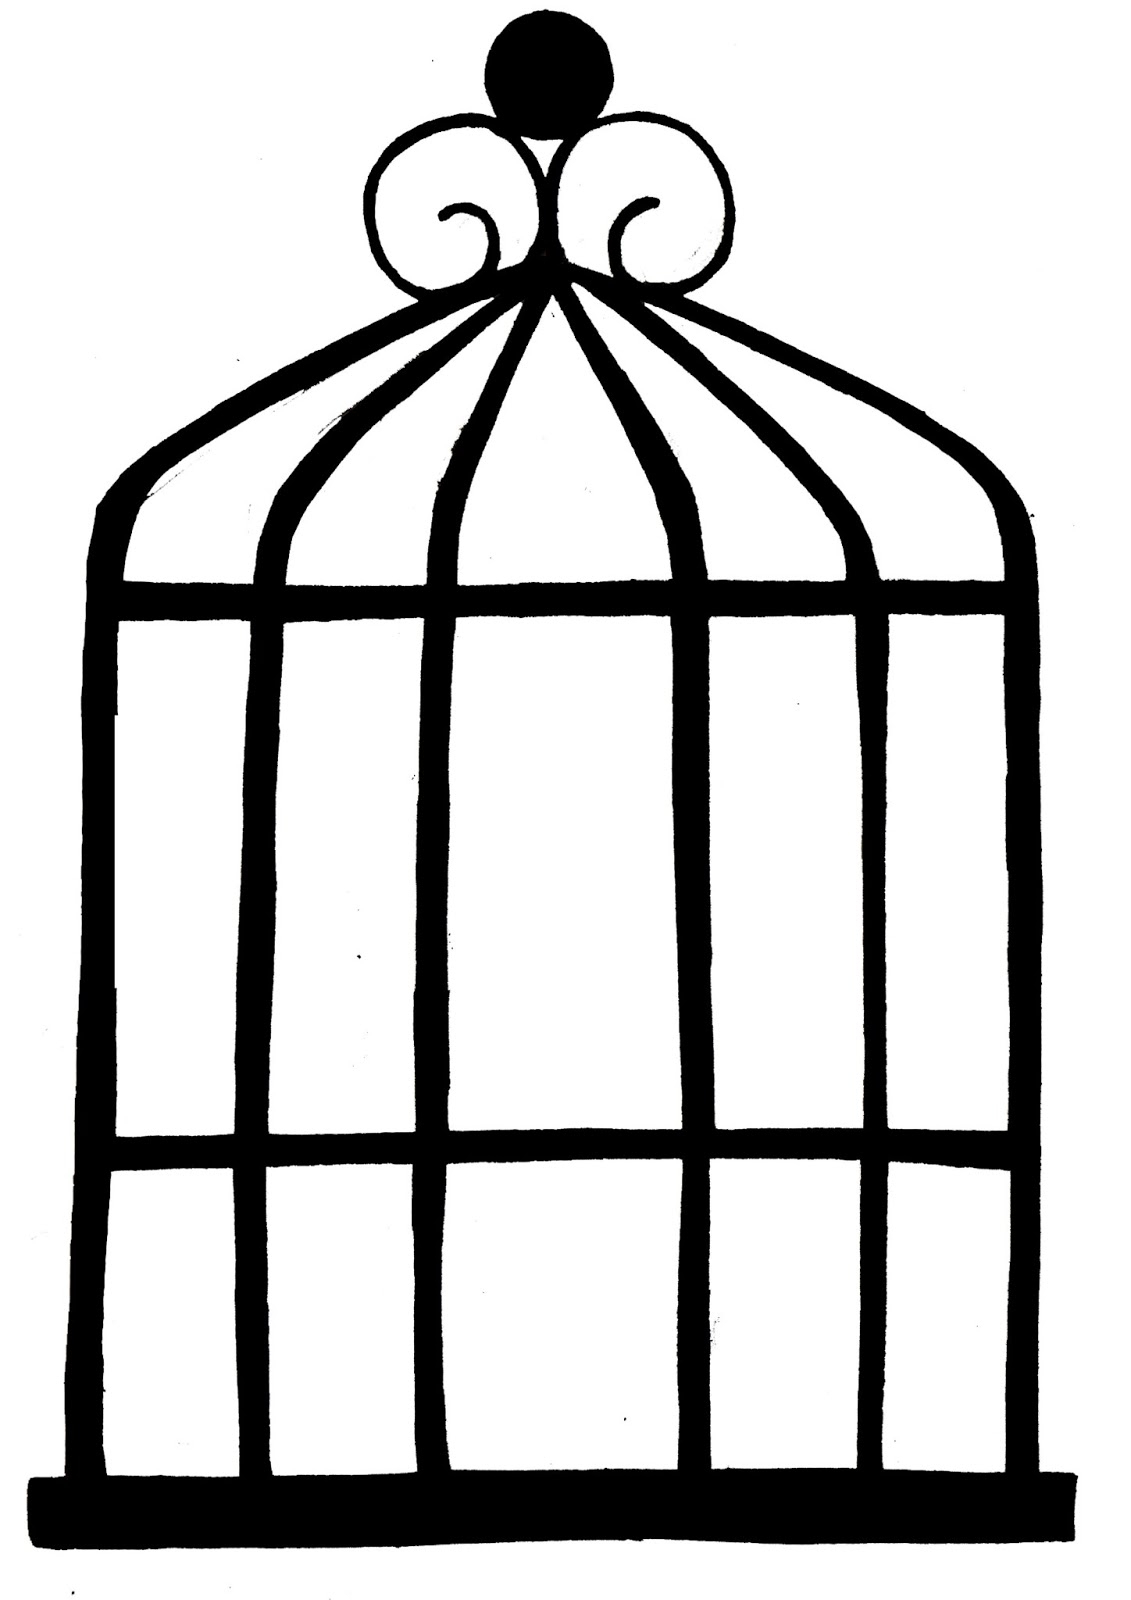 Cage clipart sketch. Bird in drawing simple